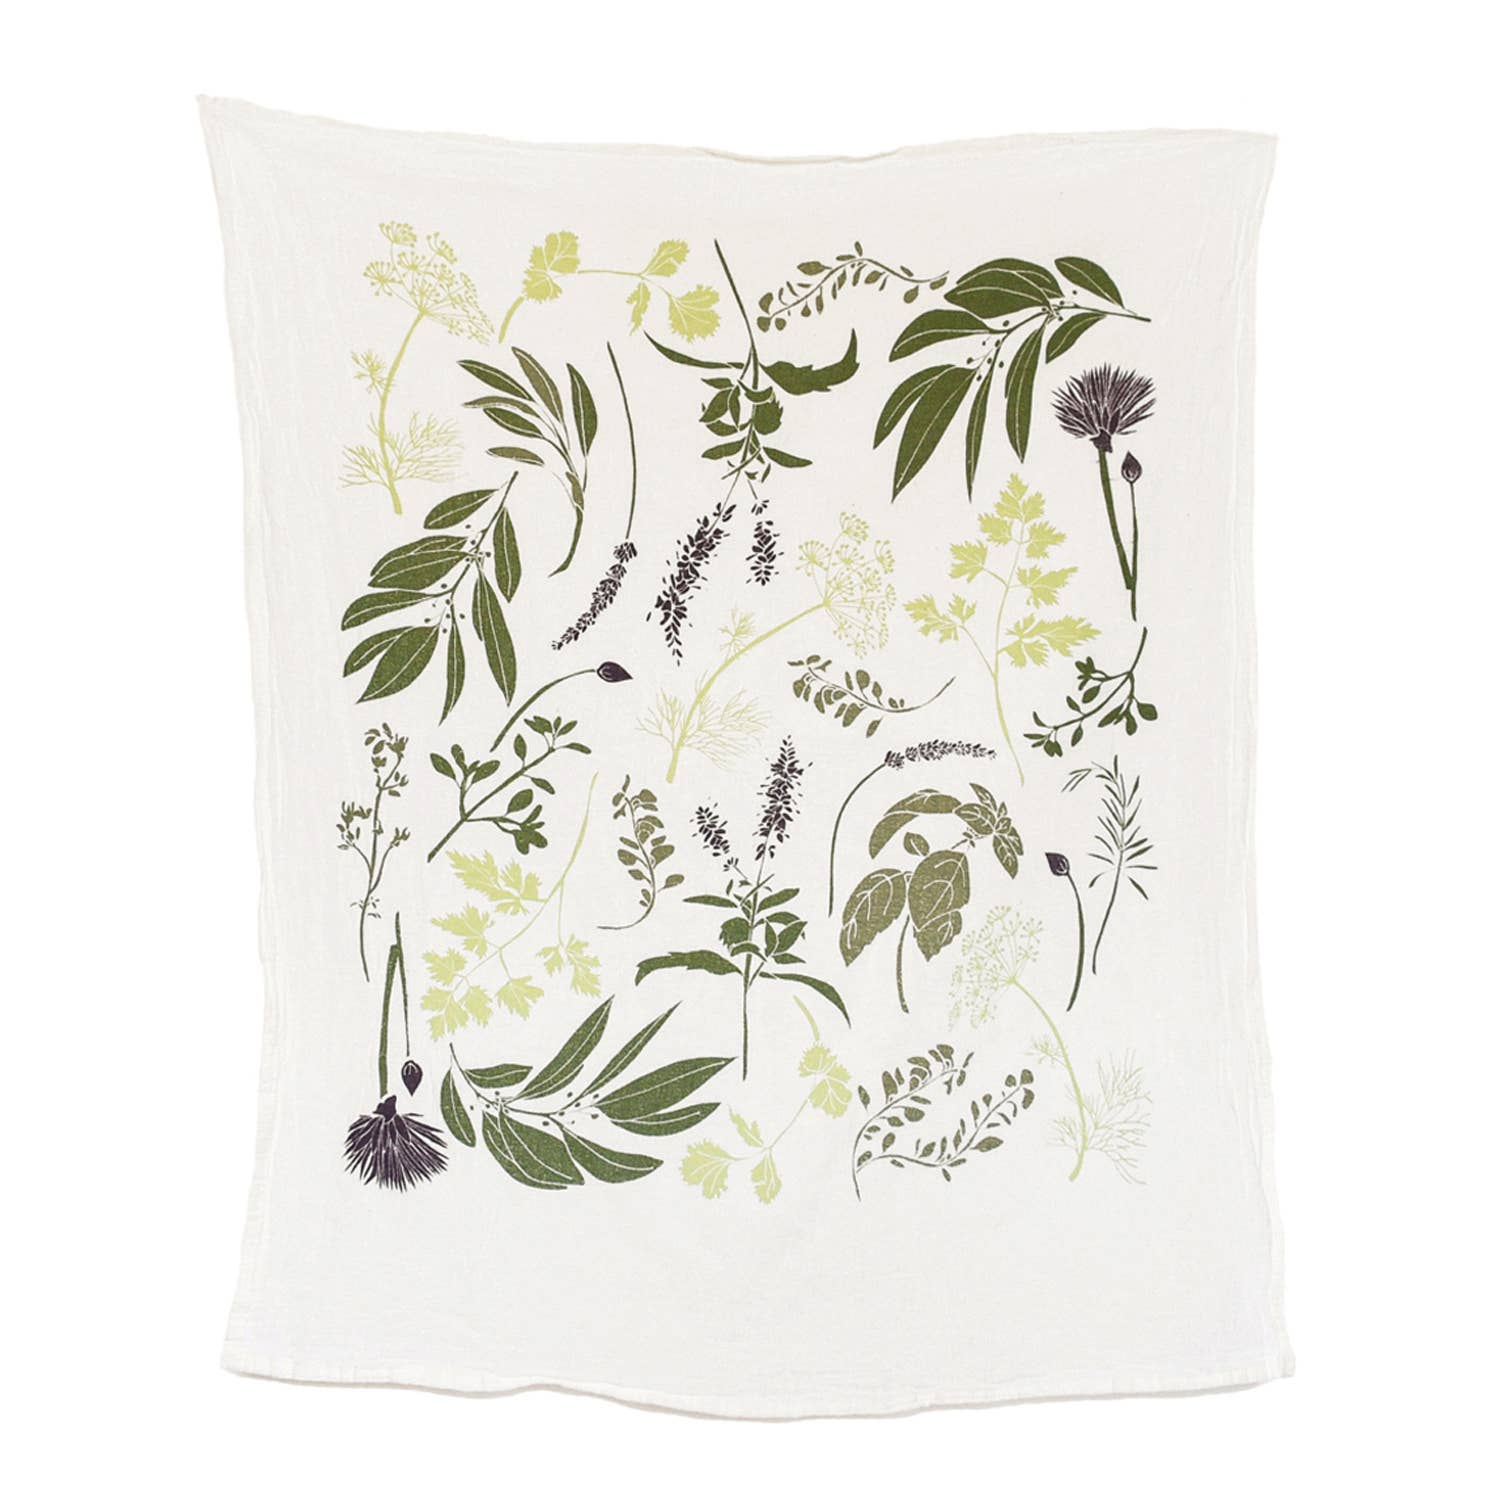 June & December Herb Garden Towel